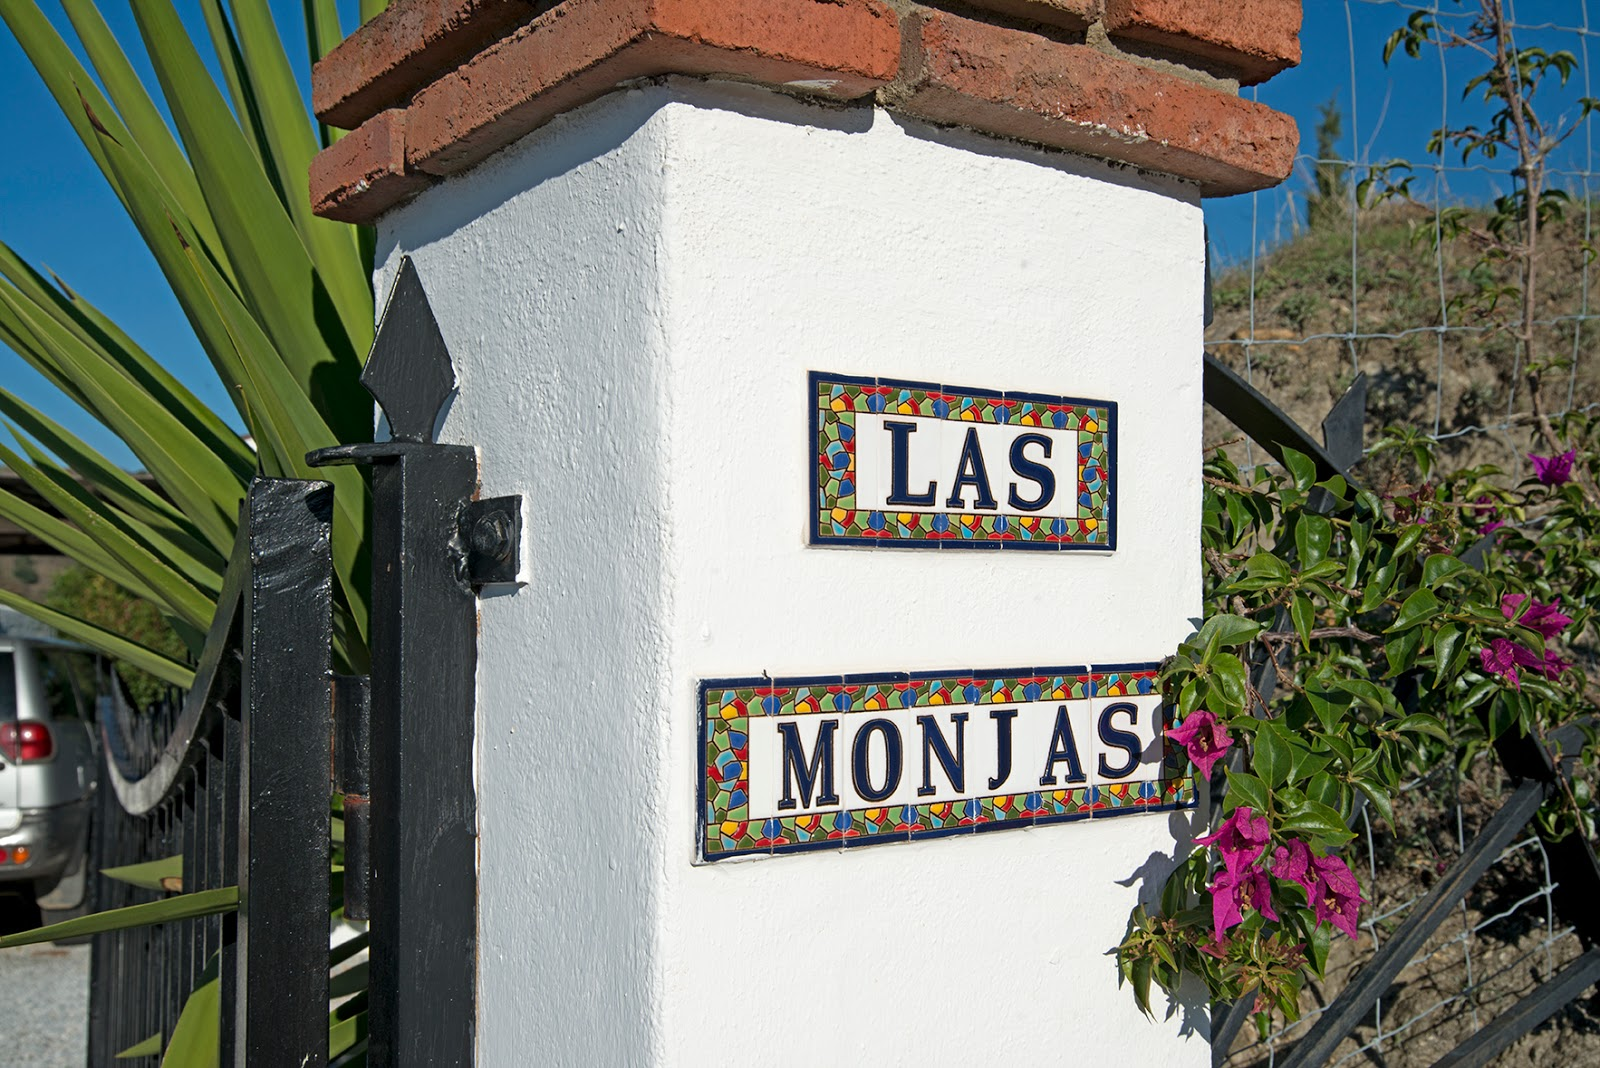 Our home, Las Monjas is for sale, it offers spacious accommodation with three bedrooms and two bathrooms {master bedroom with walk-in wardrobes and en-suite ...